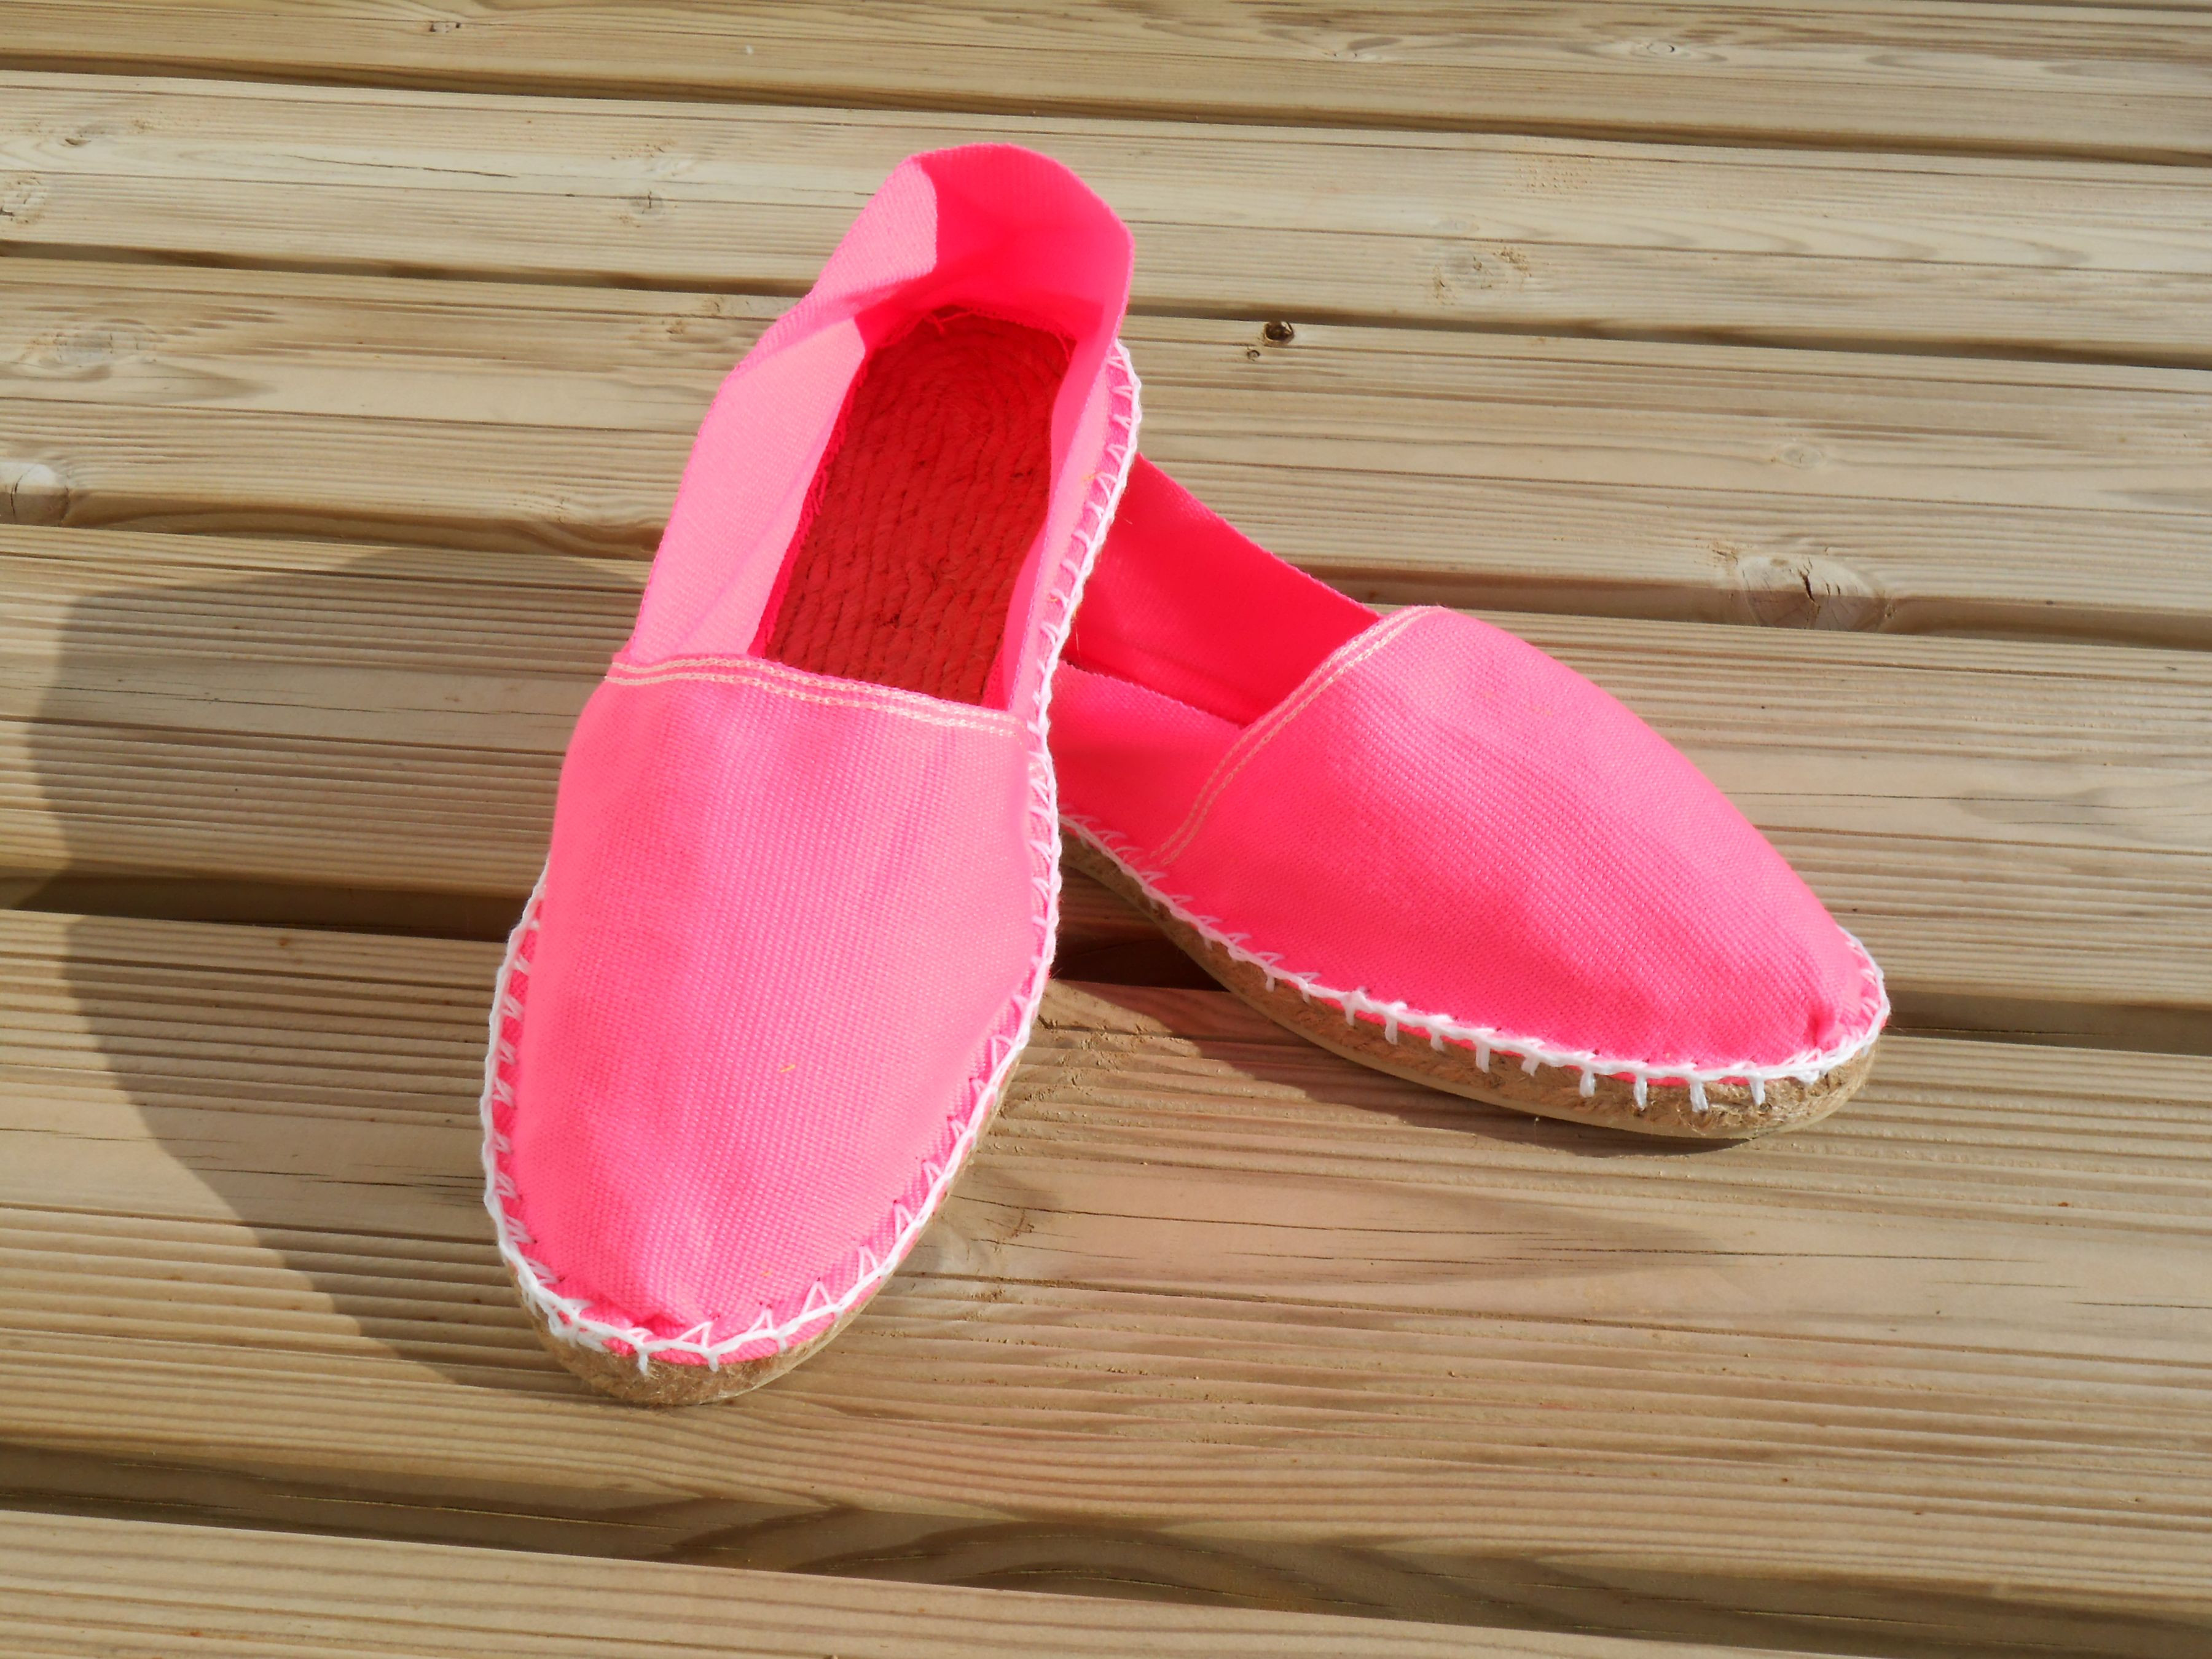 Espadrilles basques rose fluo taille 47